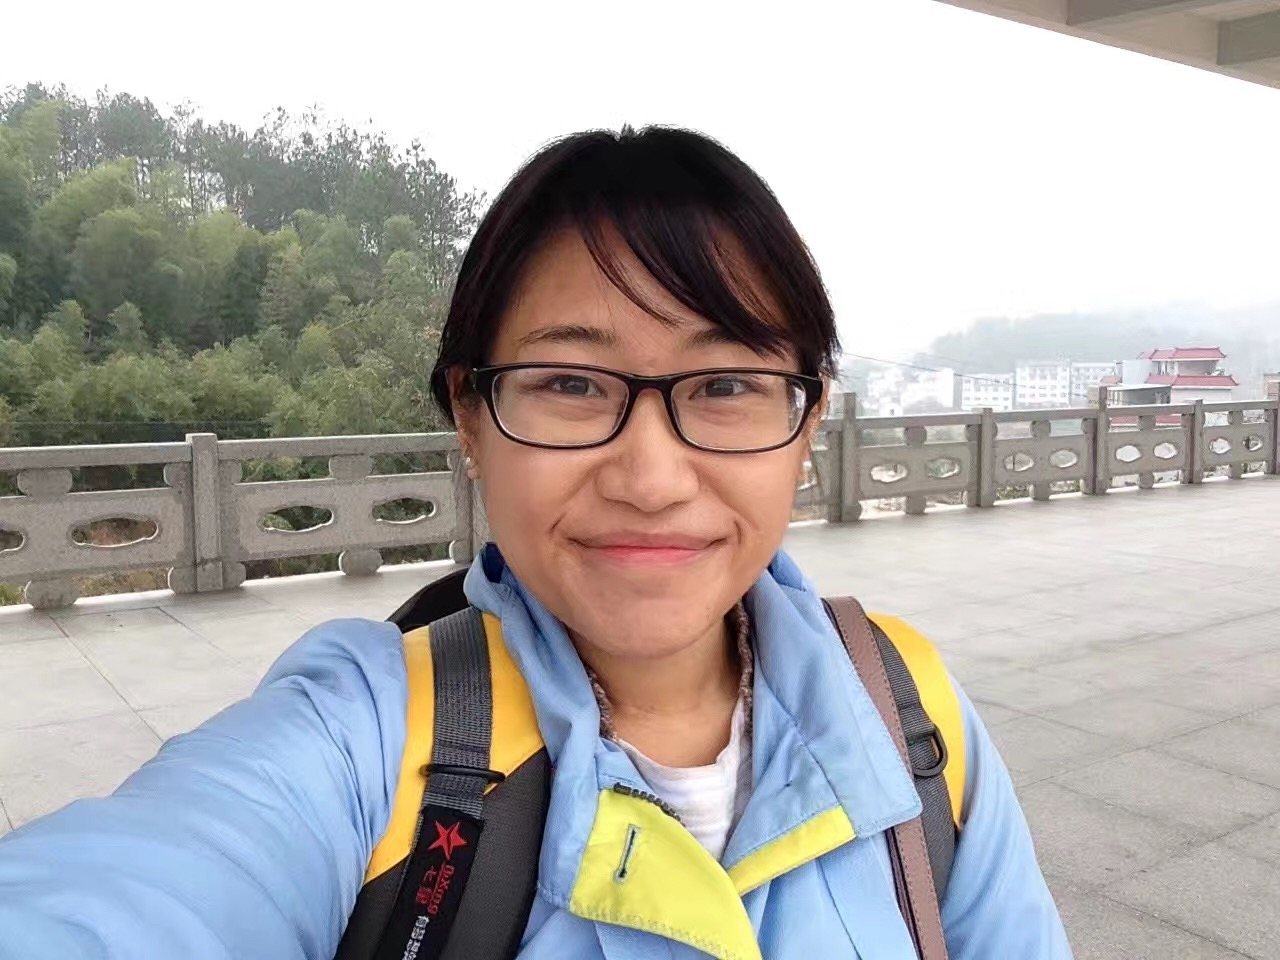 EA Panny from Lishui off on another adventure